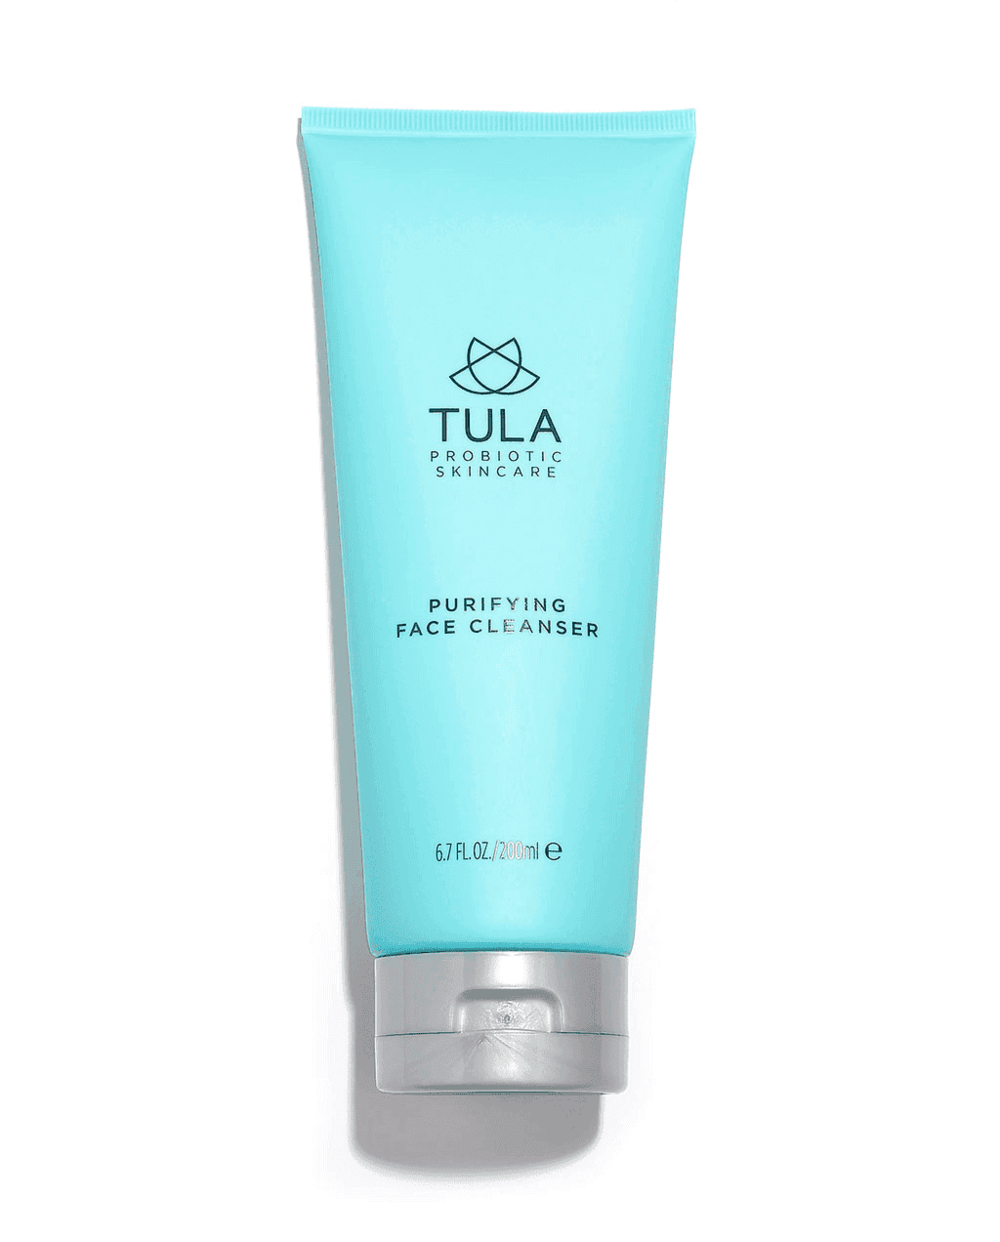 TULA_PurifyingCleanser-Closed-New_comprLVL2.png